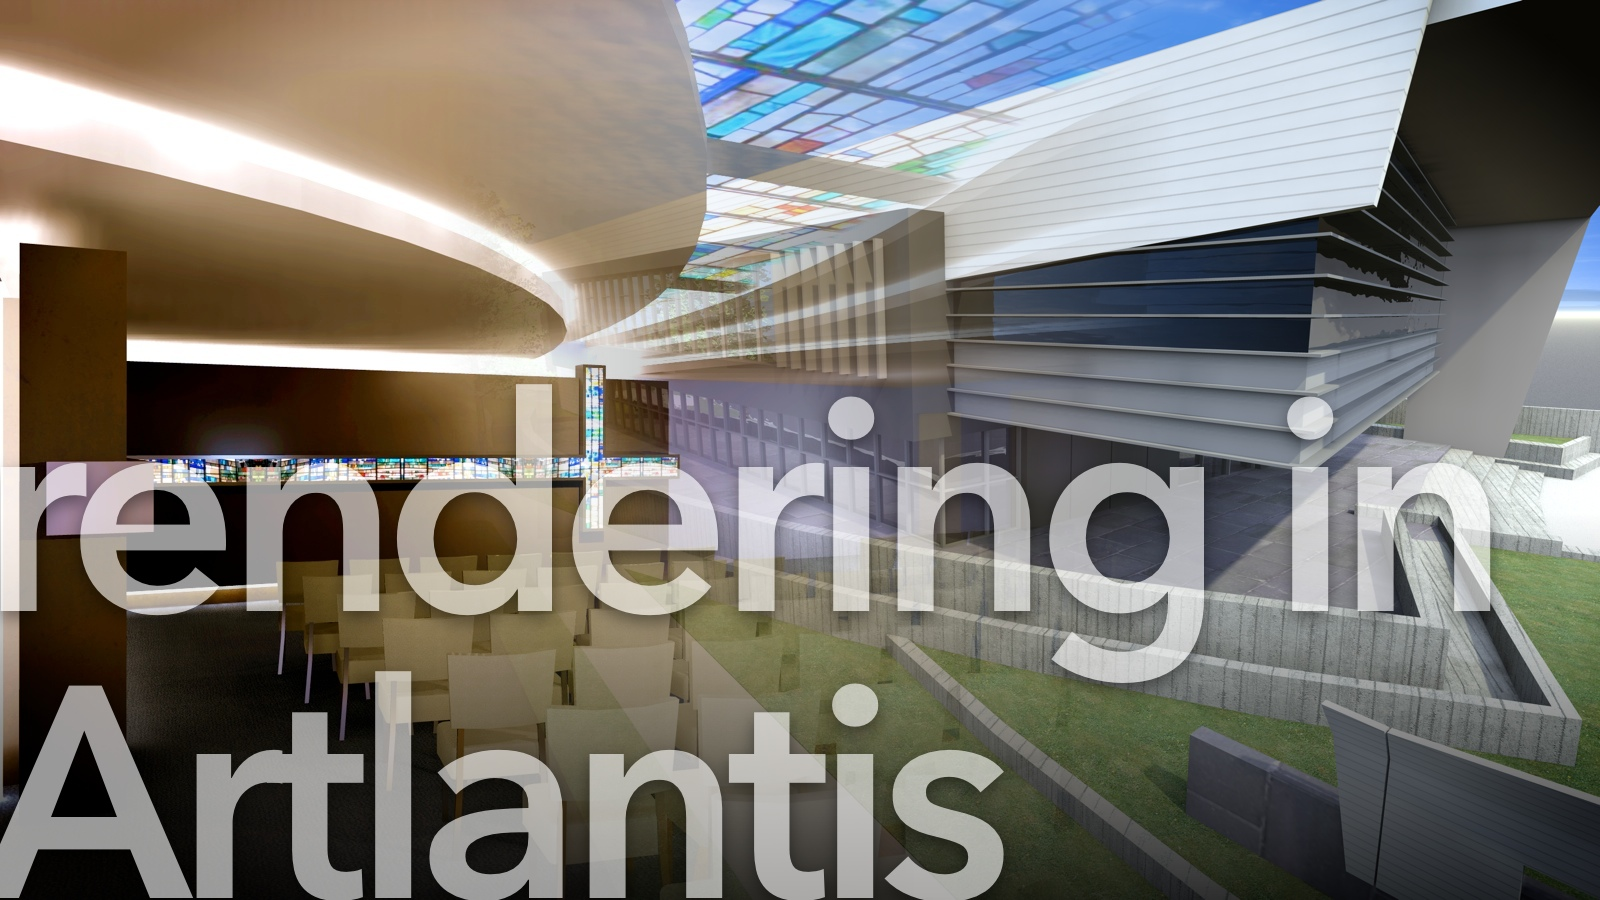 Take your architectural renderings to the next level with these Artlantis video tutorials for exterior and interior imagery.